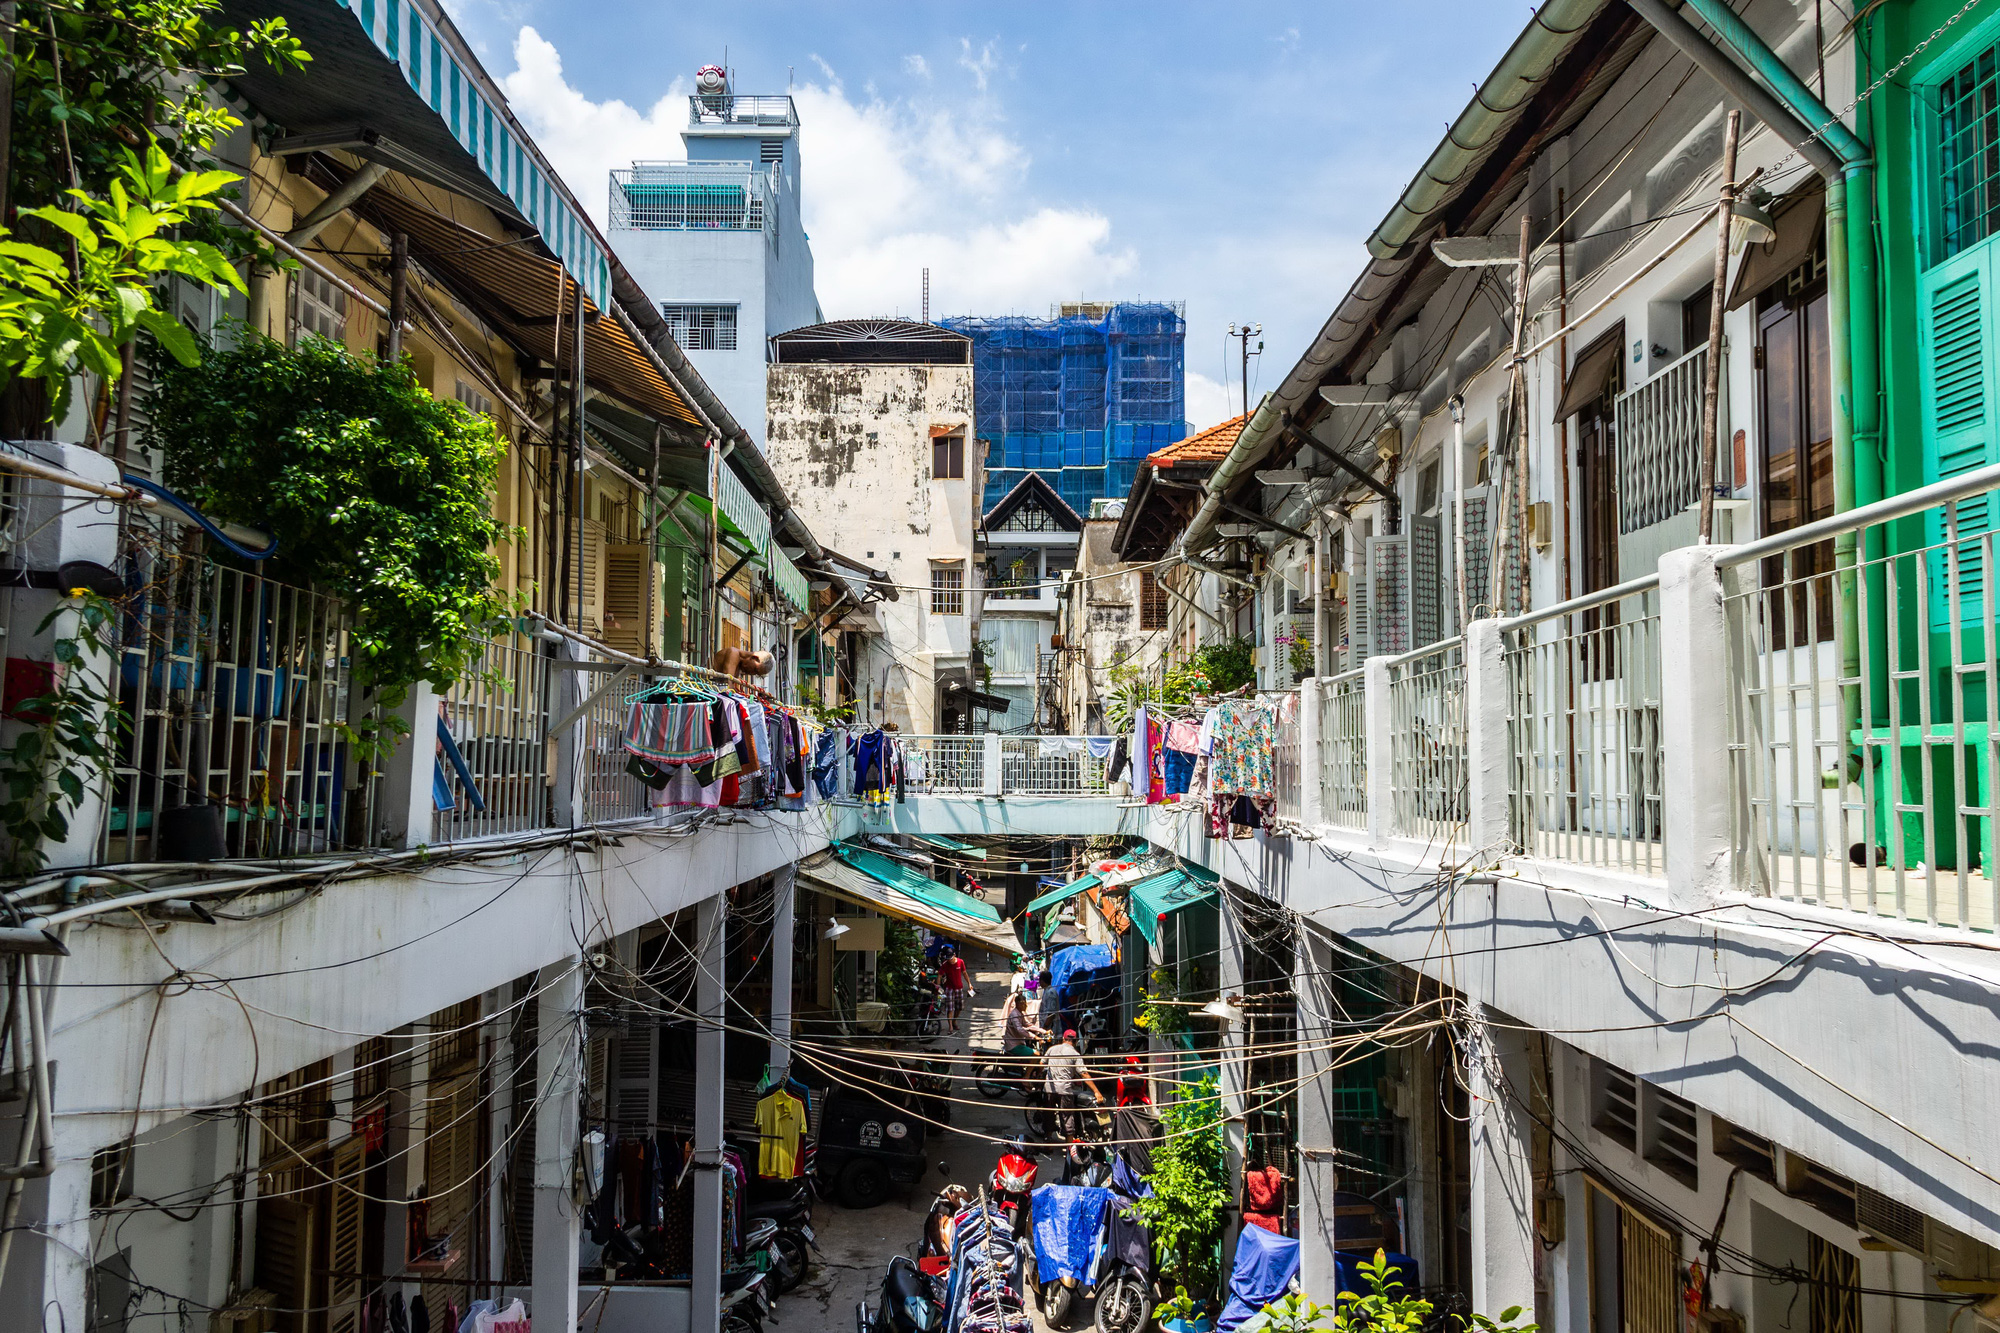 The unique two-story blocks of houses in an alley of a Chinese Vietnamese neighborhood in District 5, Ho Chi Minh City, Vietnam. Photo: Tran Hong Ngoc / Tuoi Tre